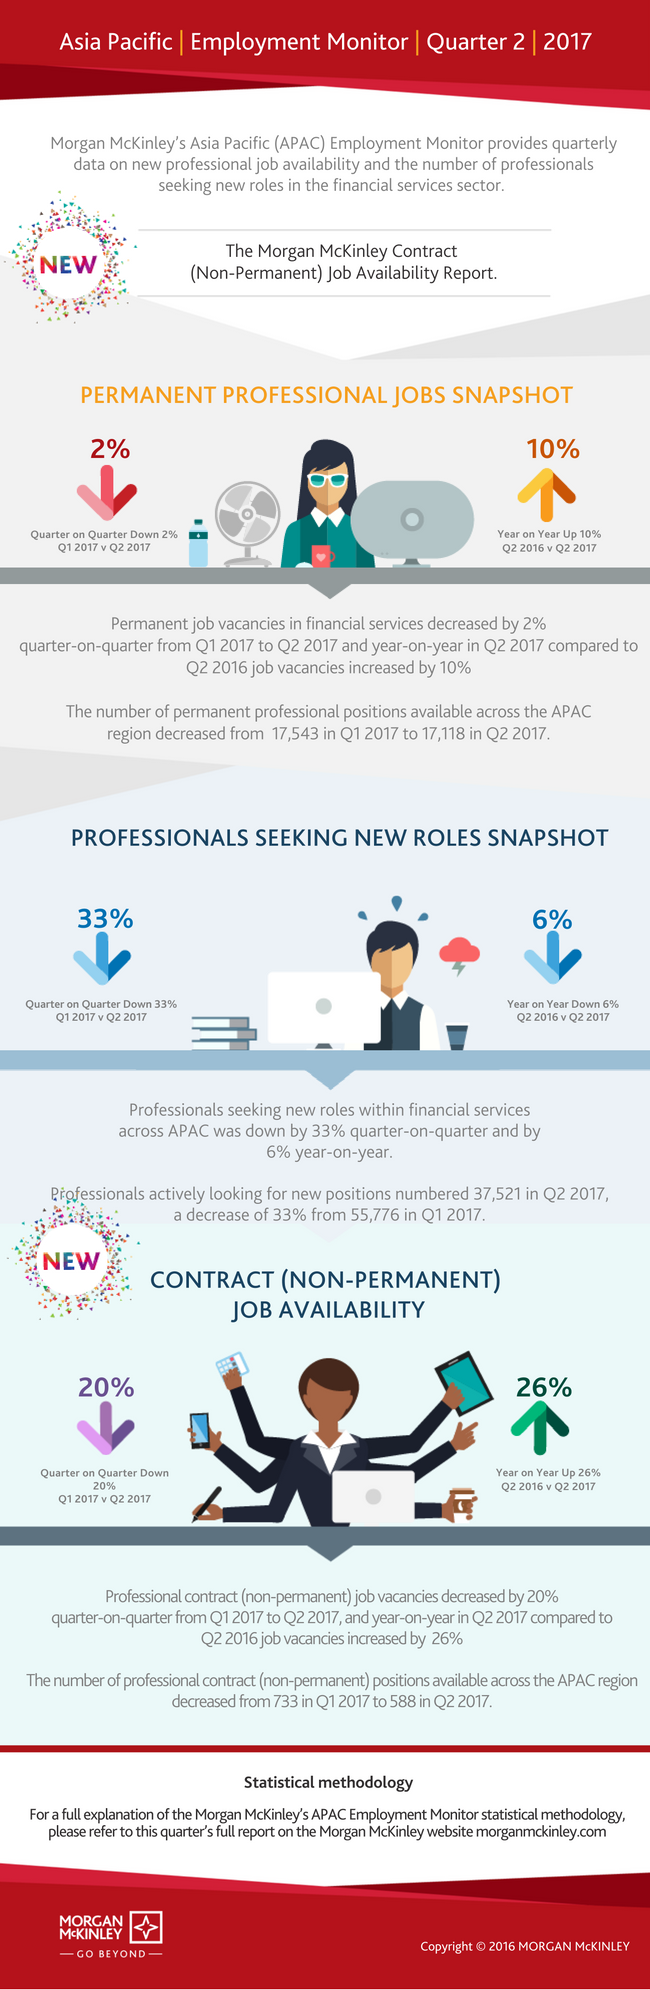 APAC EMPLOYMENT MONITOR Q2 2017